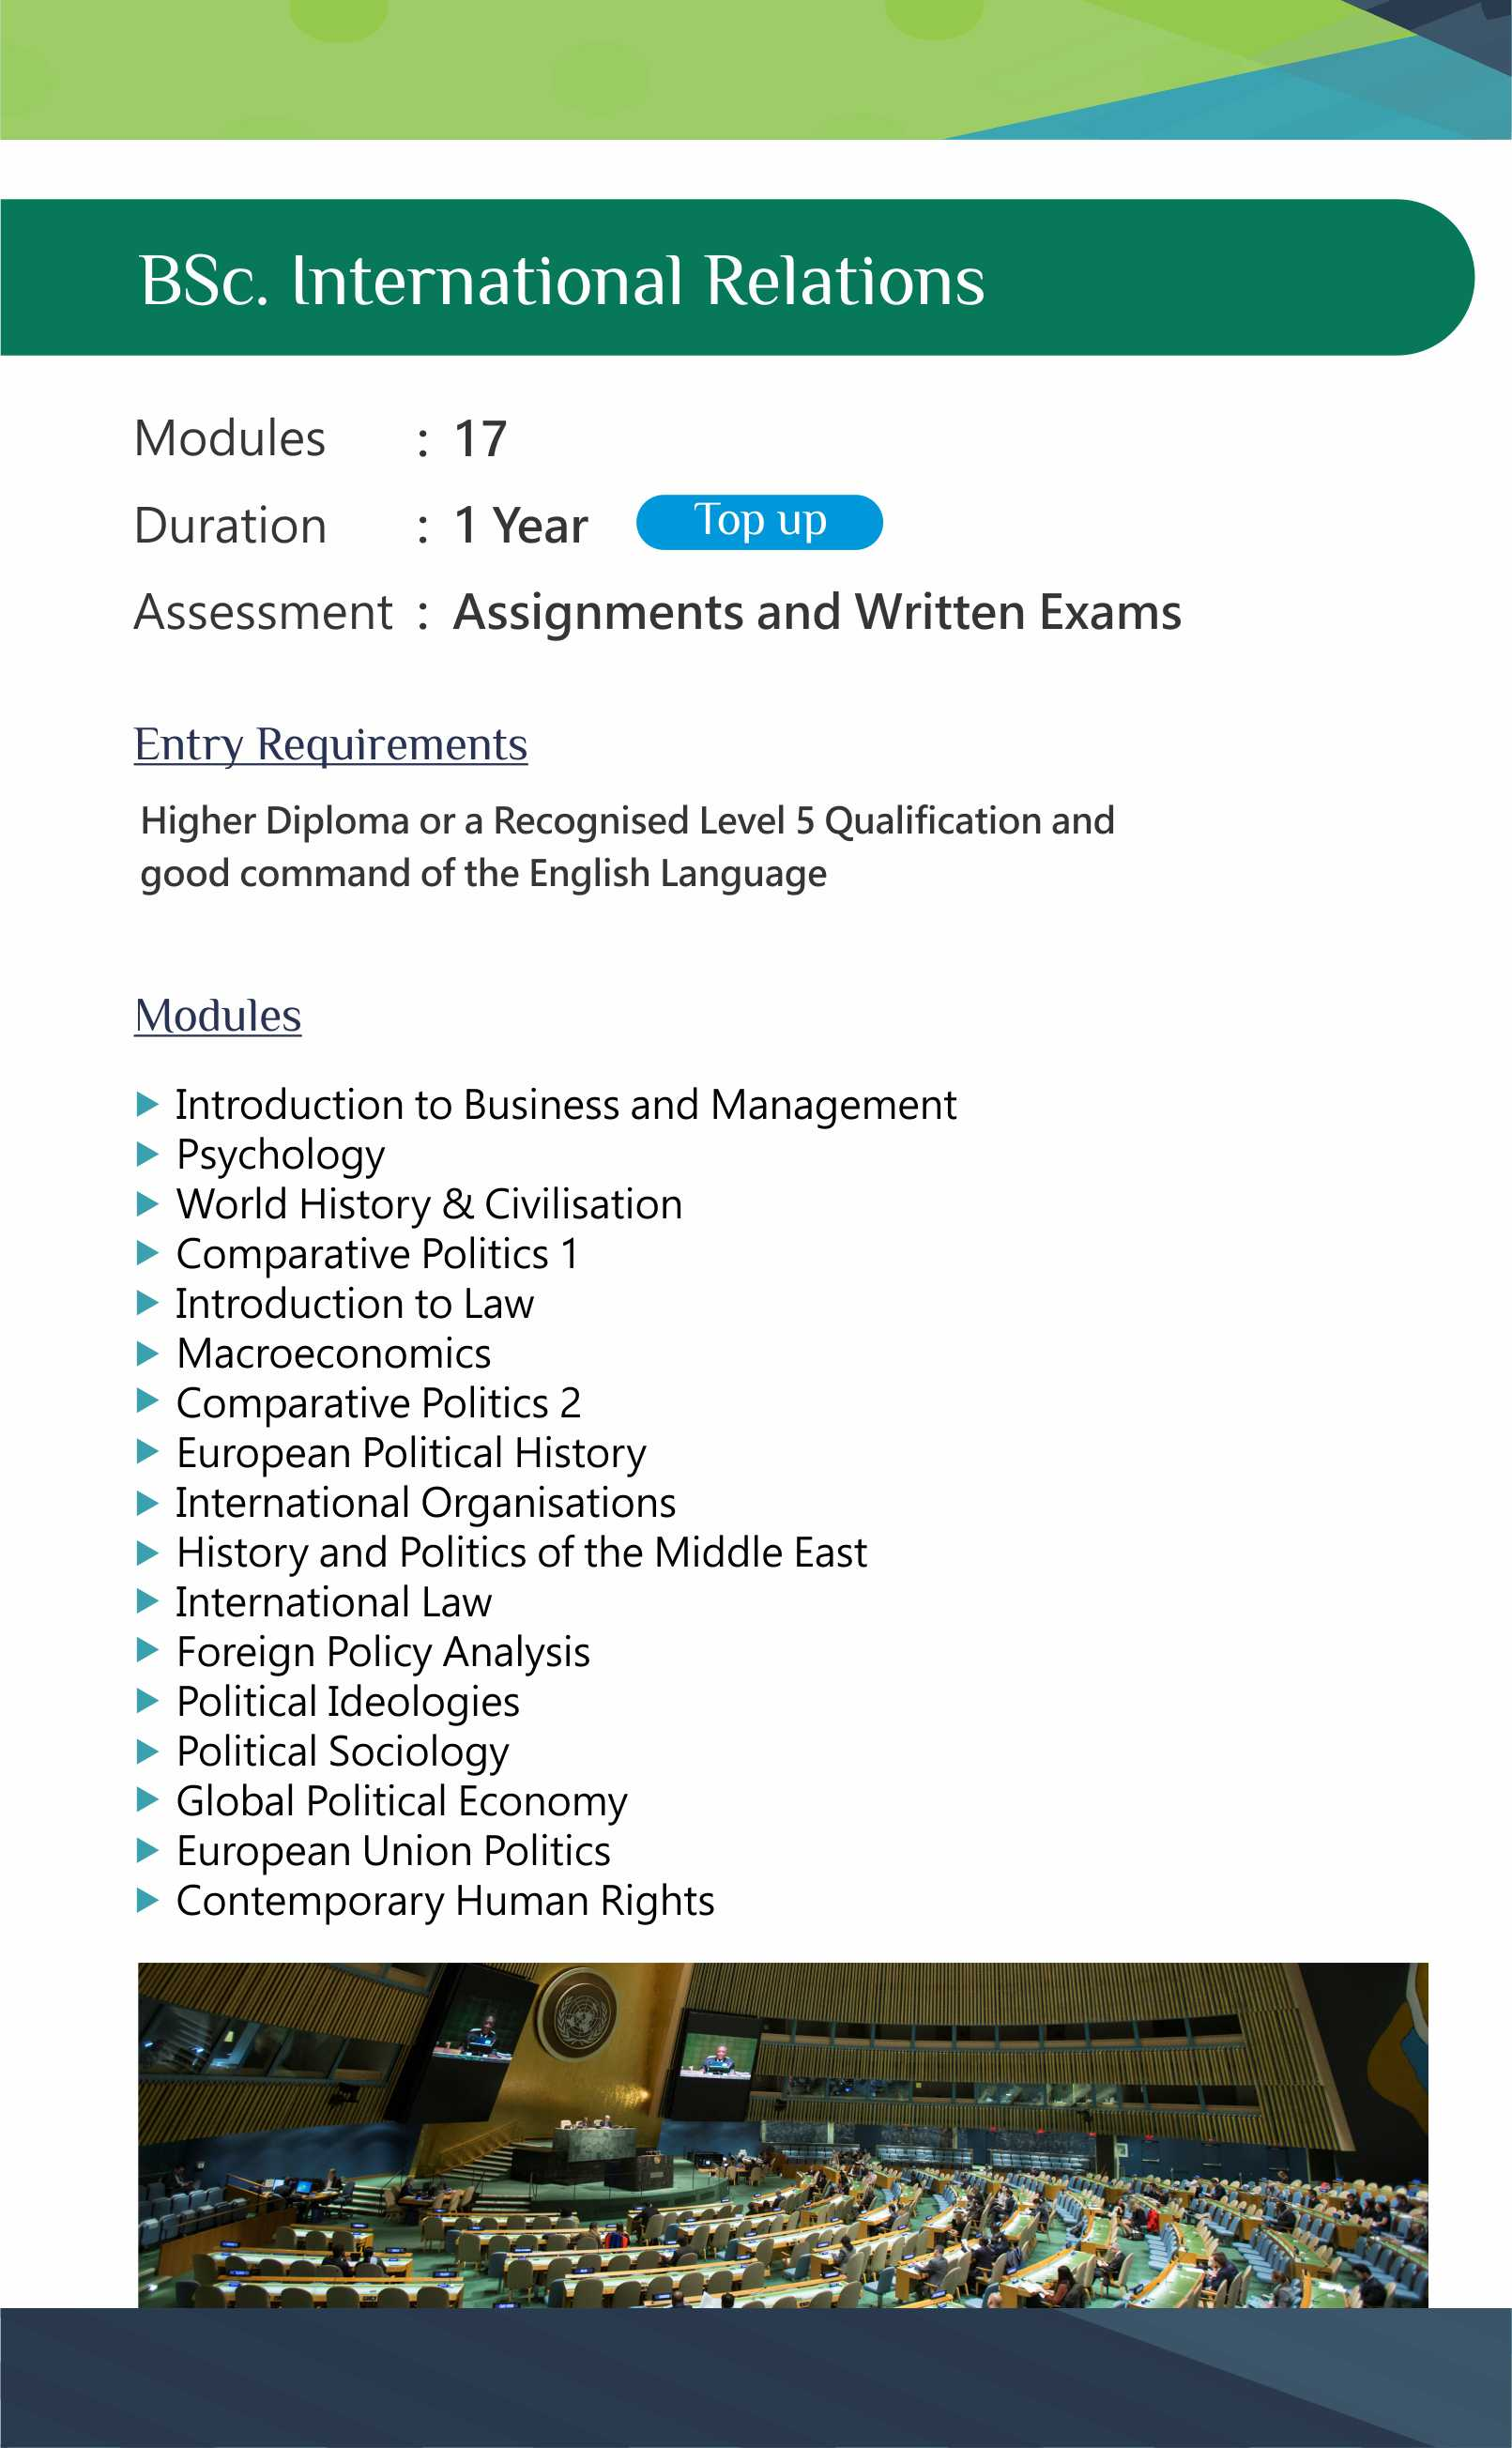 BSc. International Relations (Final Year Top-Up)